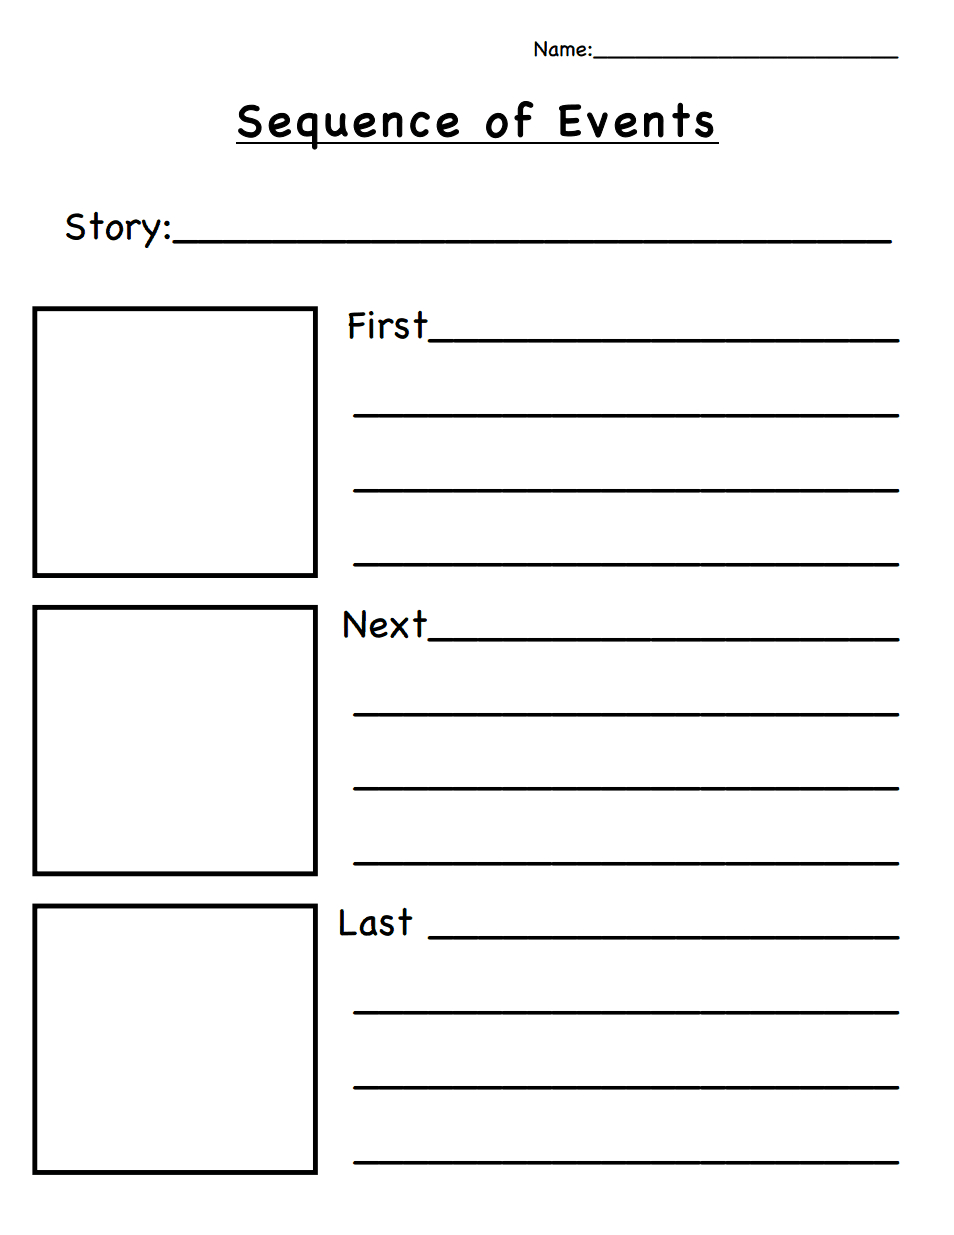 Sequence Of Events.pdf | Classroom Ideas | Sequencing Worksheets | Free Printable Sequencing Worksheets 2Nd Grade